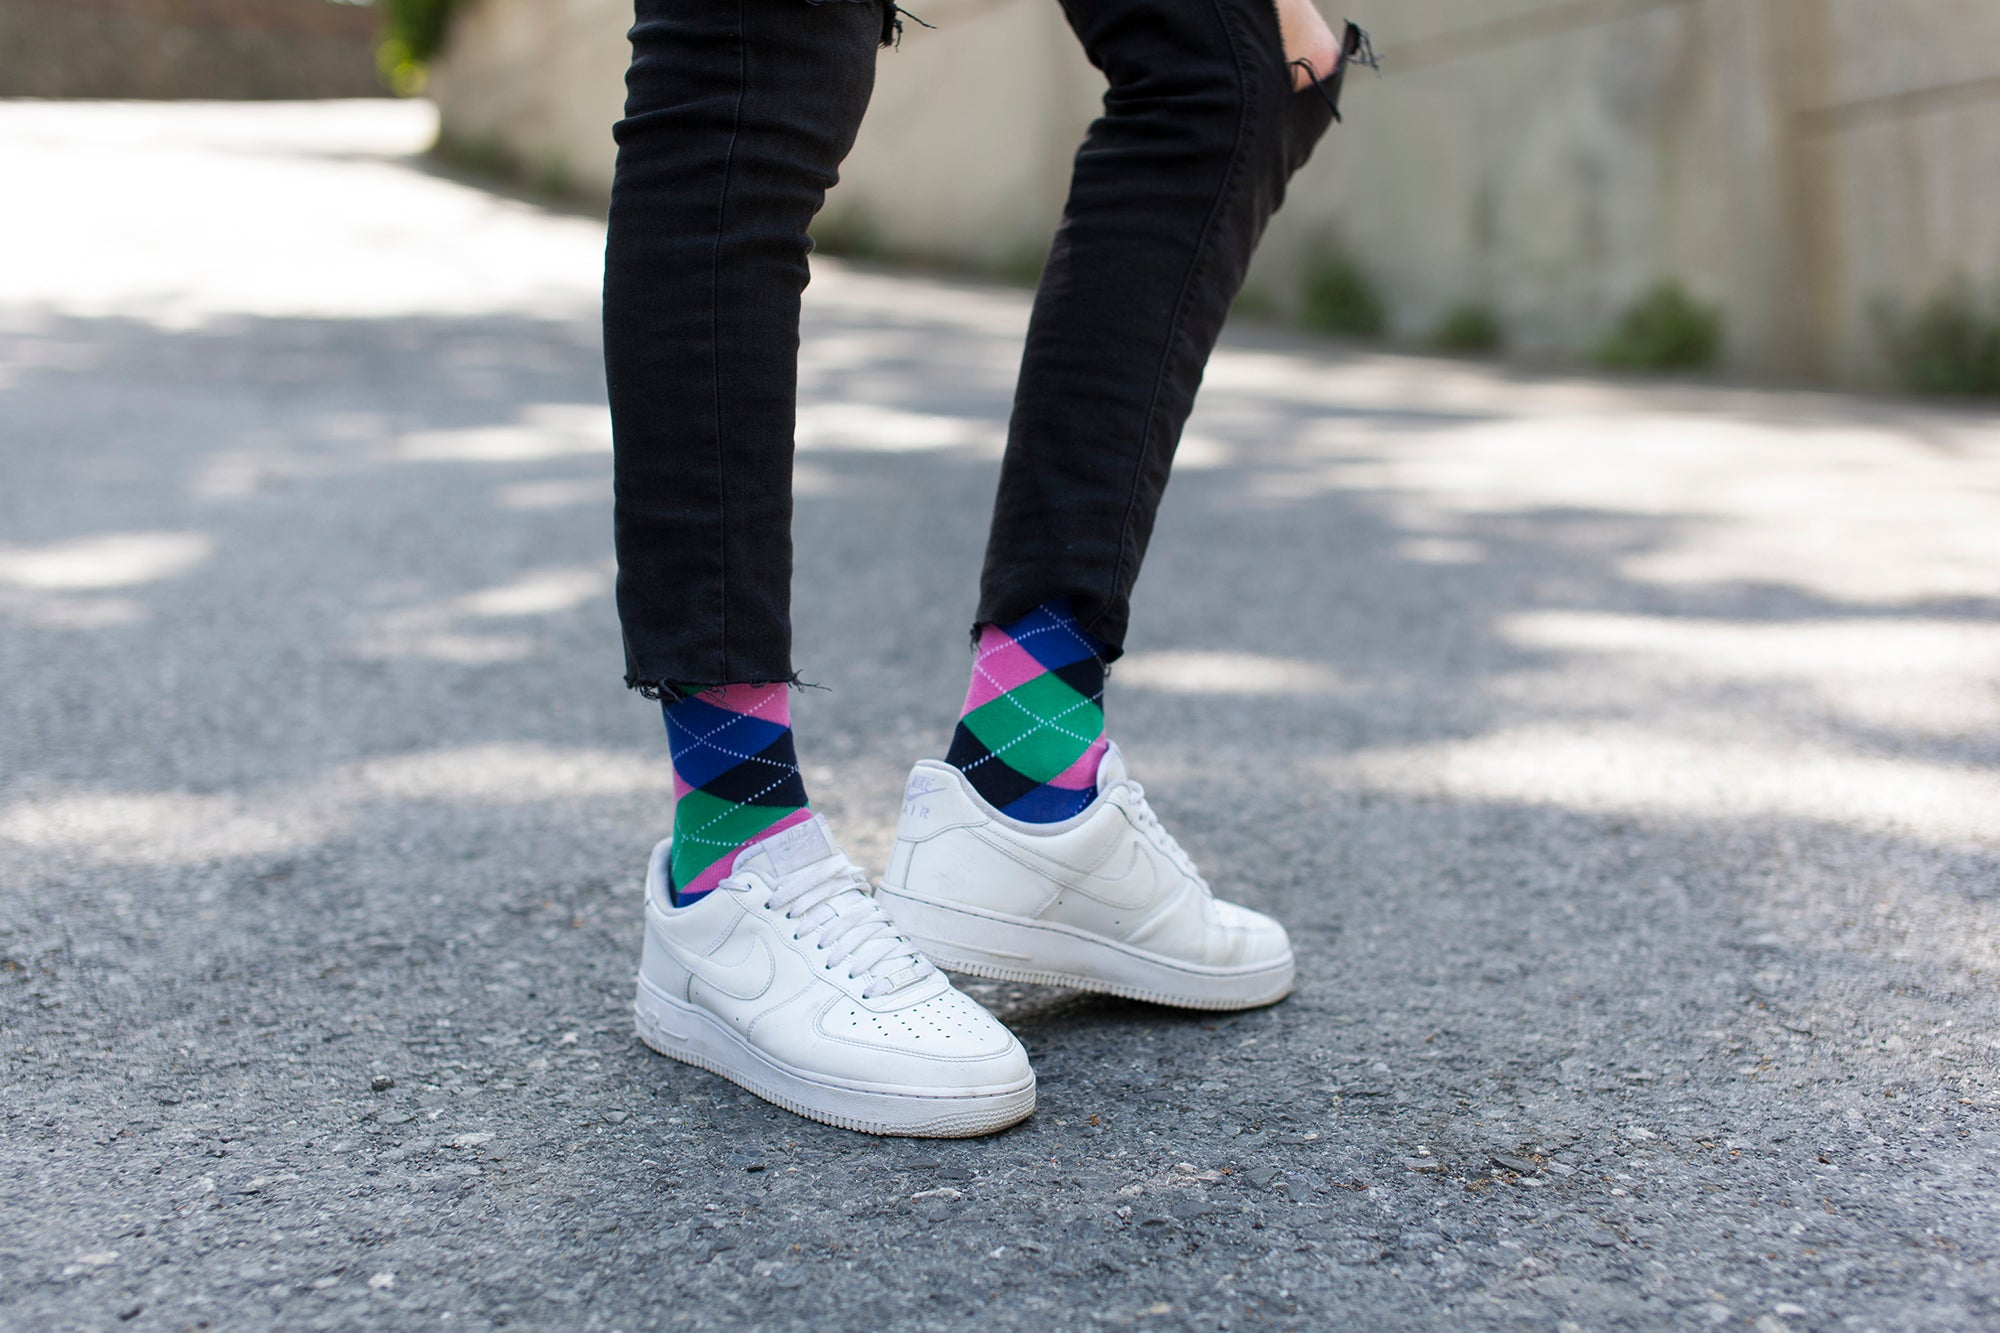 Men's Pastel Argyle Socks